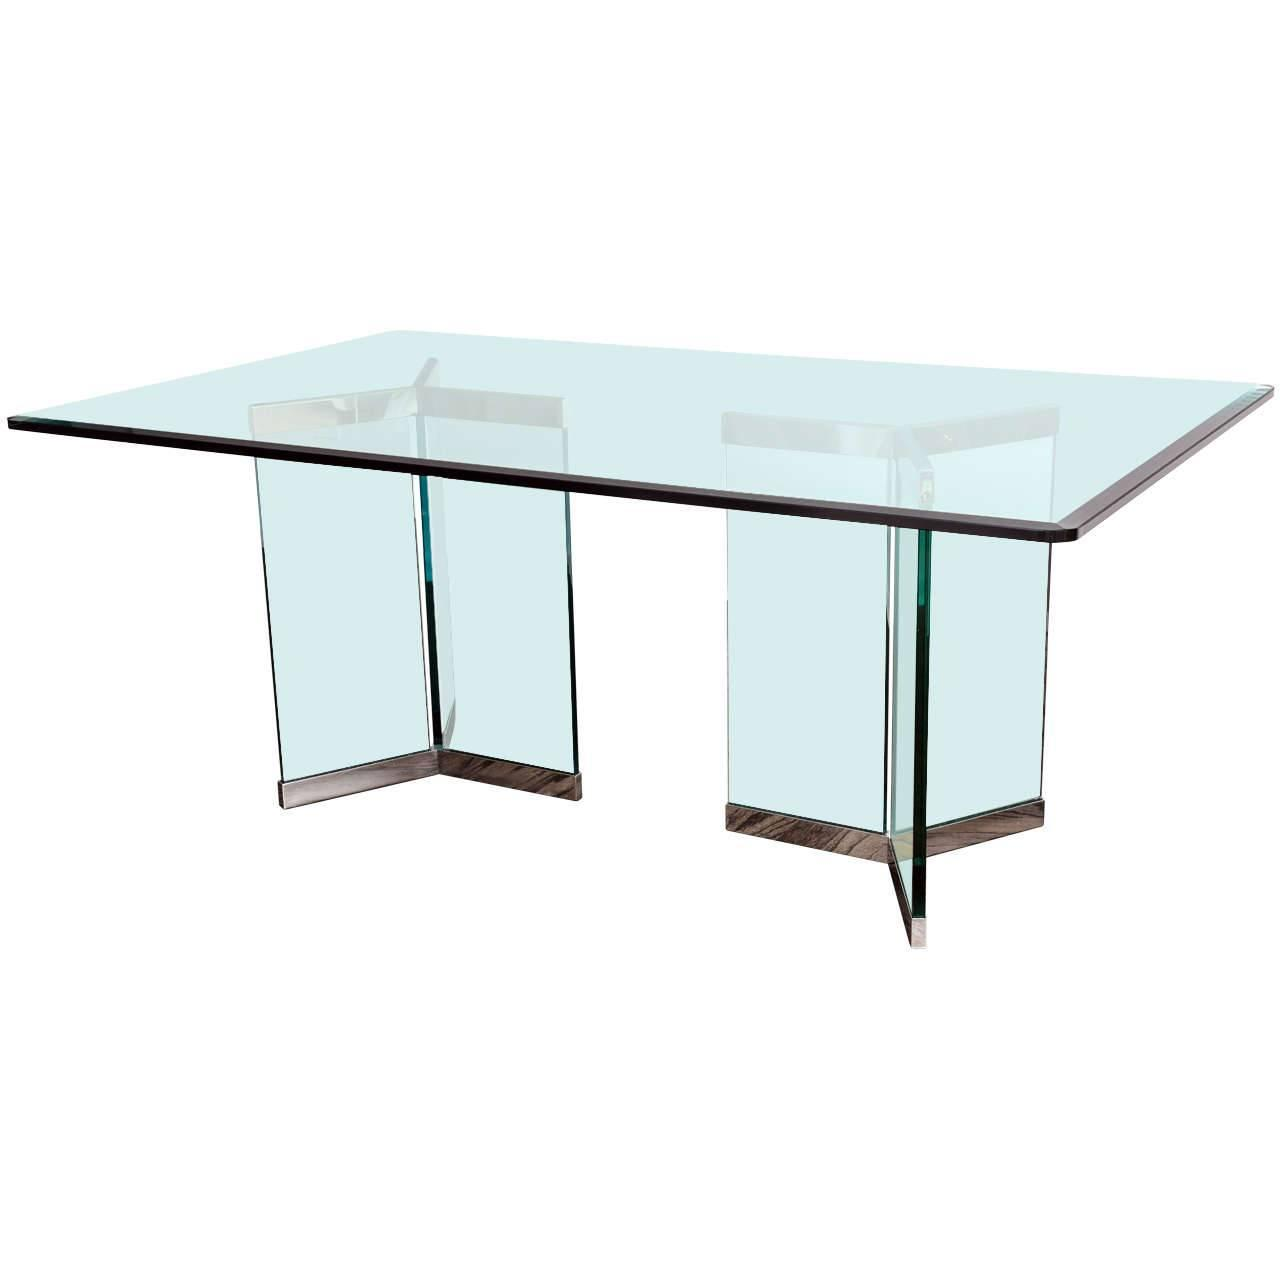 Leon rosen pace collection rectangular polished chrome for Glass and chrome dining table